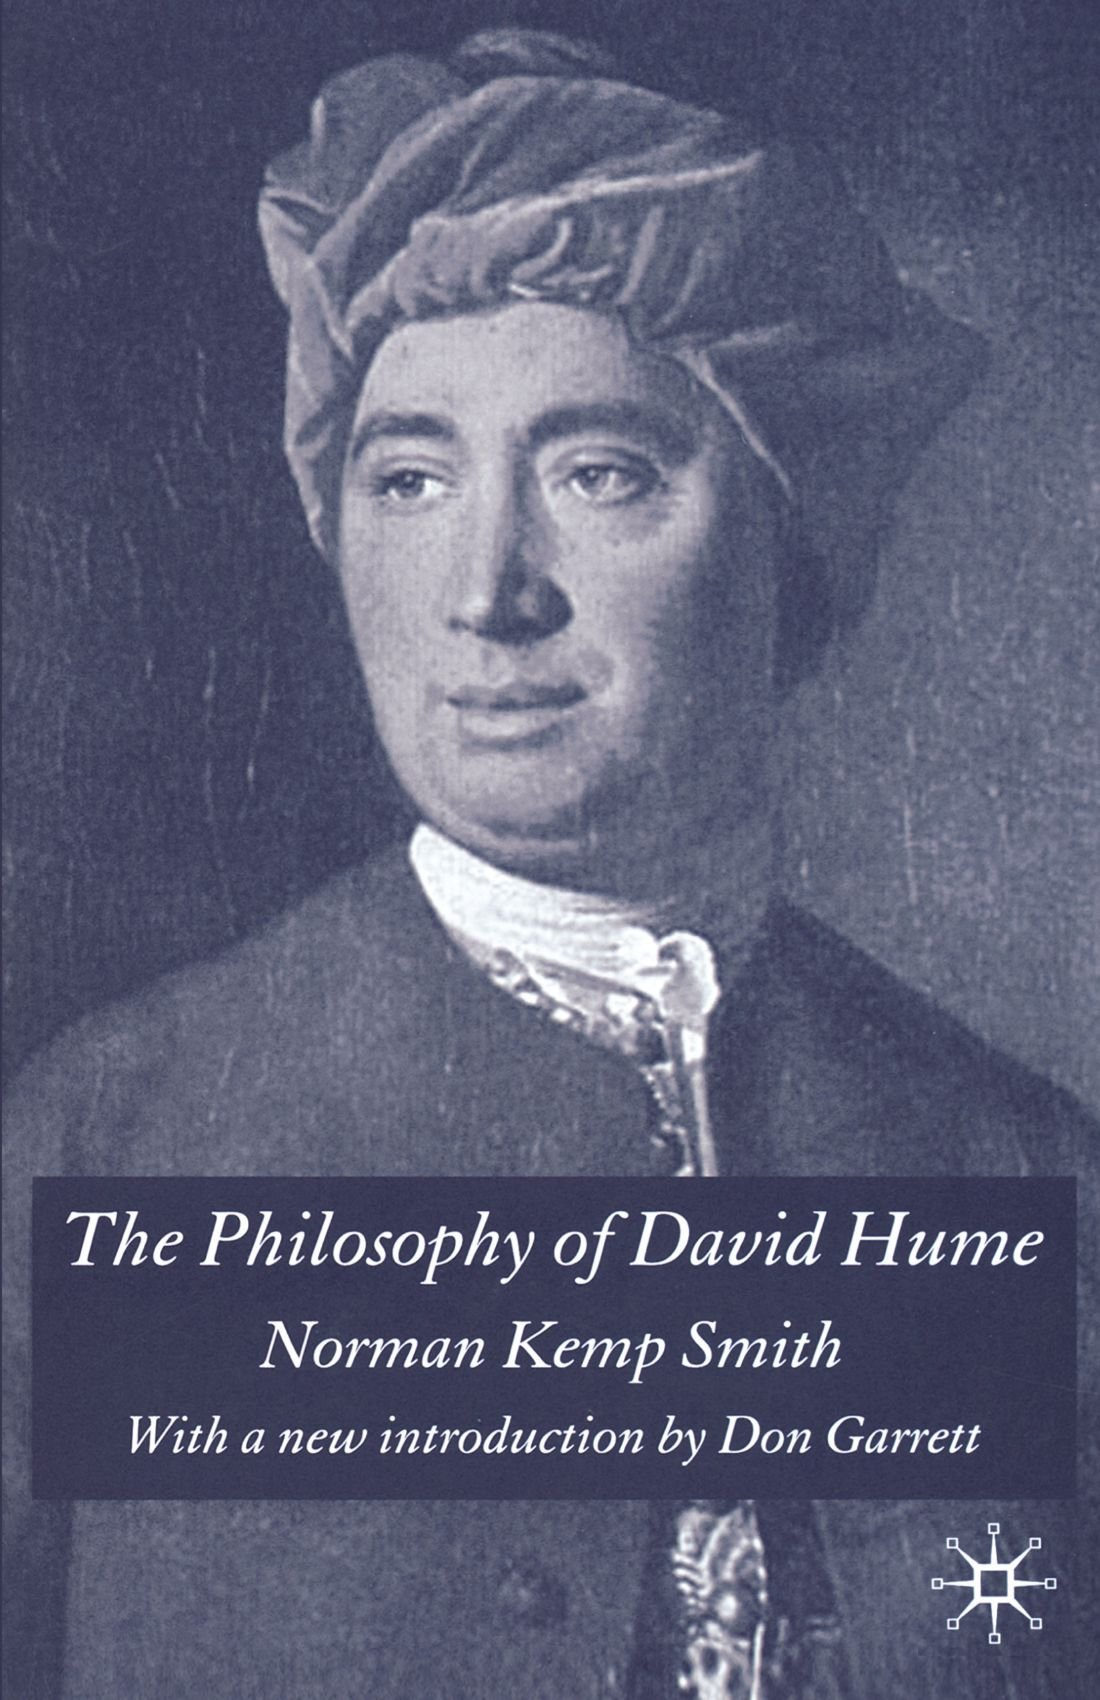 the philosophy of david hume a new introduction by don the philosophy of david hume a new introduction by don garrett norman kemp smith 9781403915078 com books